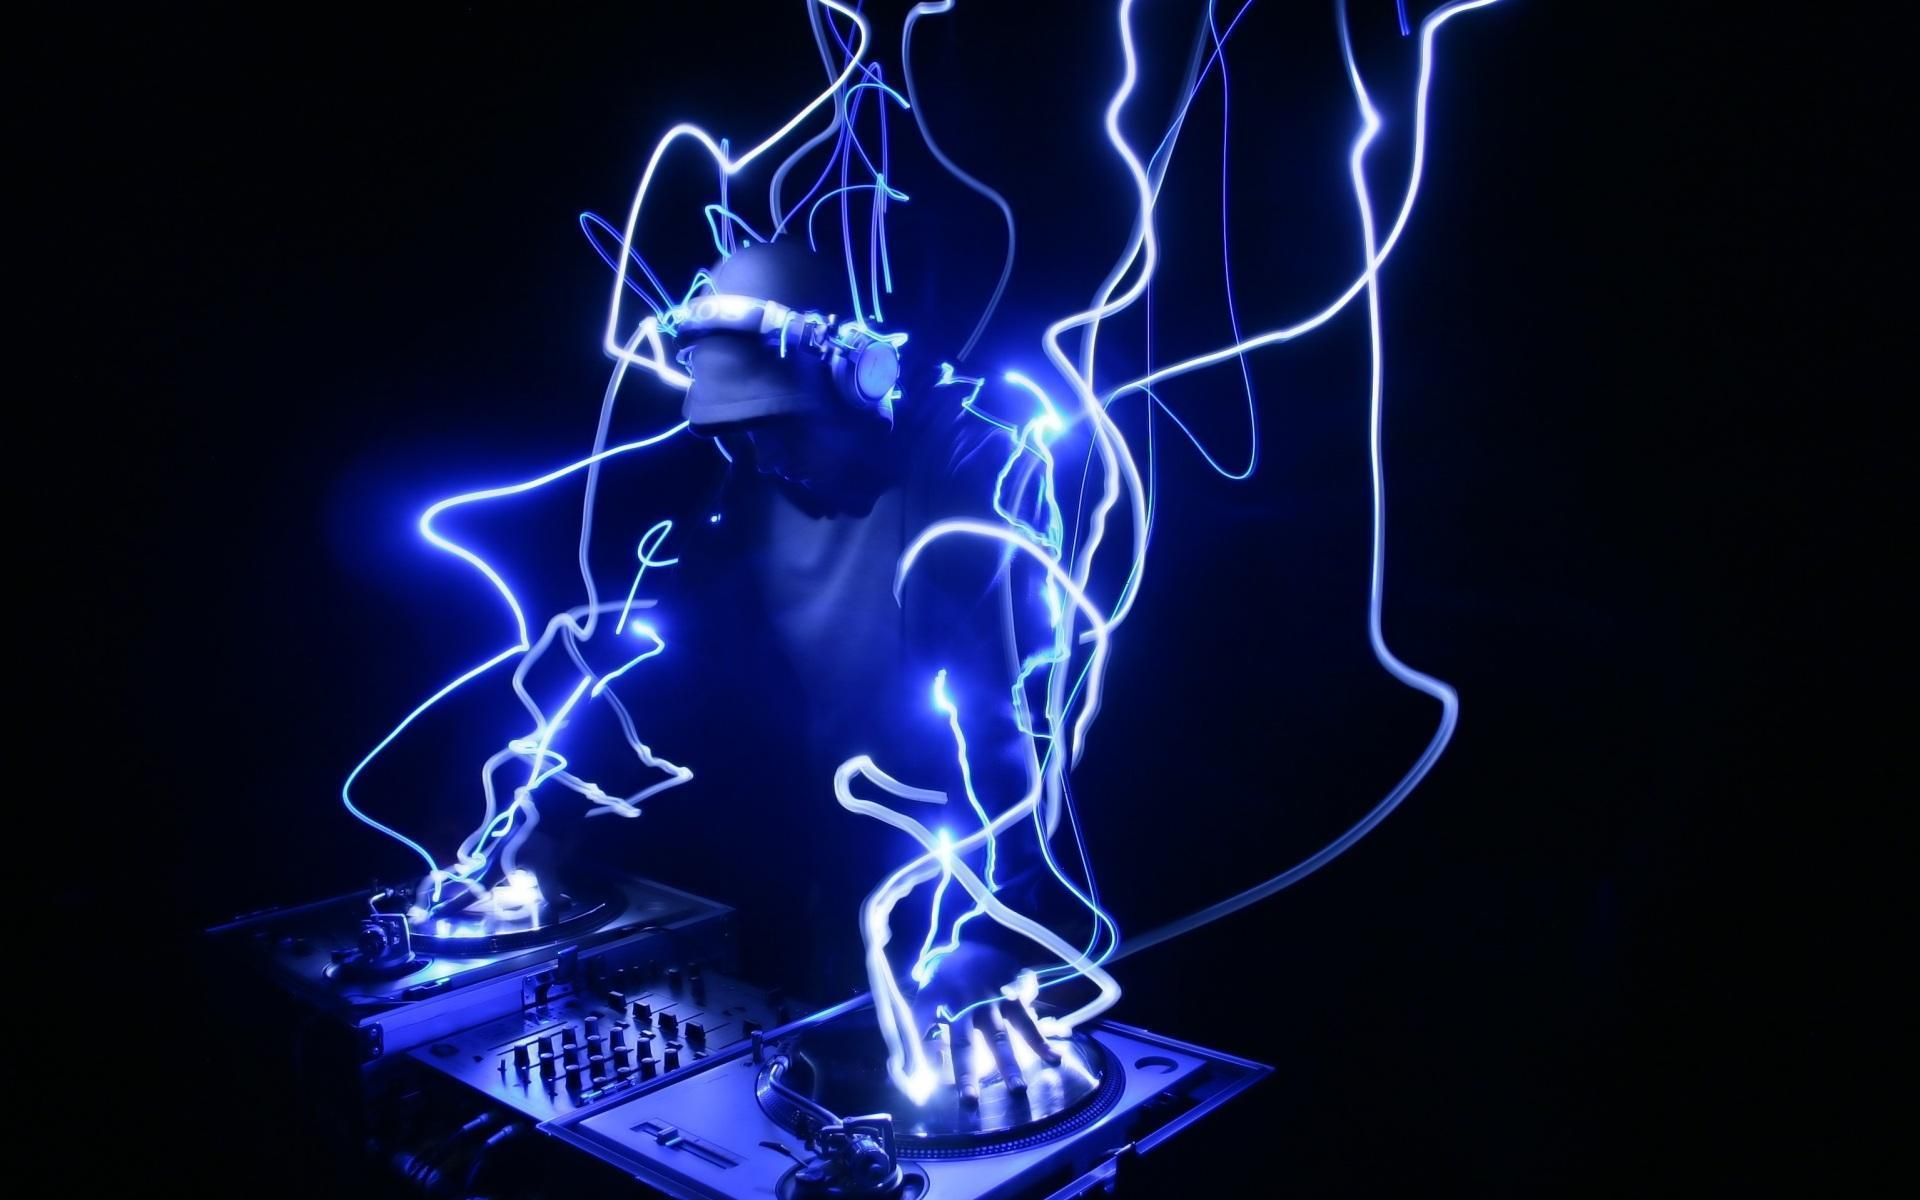 Cool Abstract Dj Music Wallpaper: Cool DJ Wallpapers